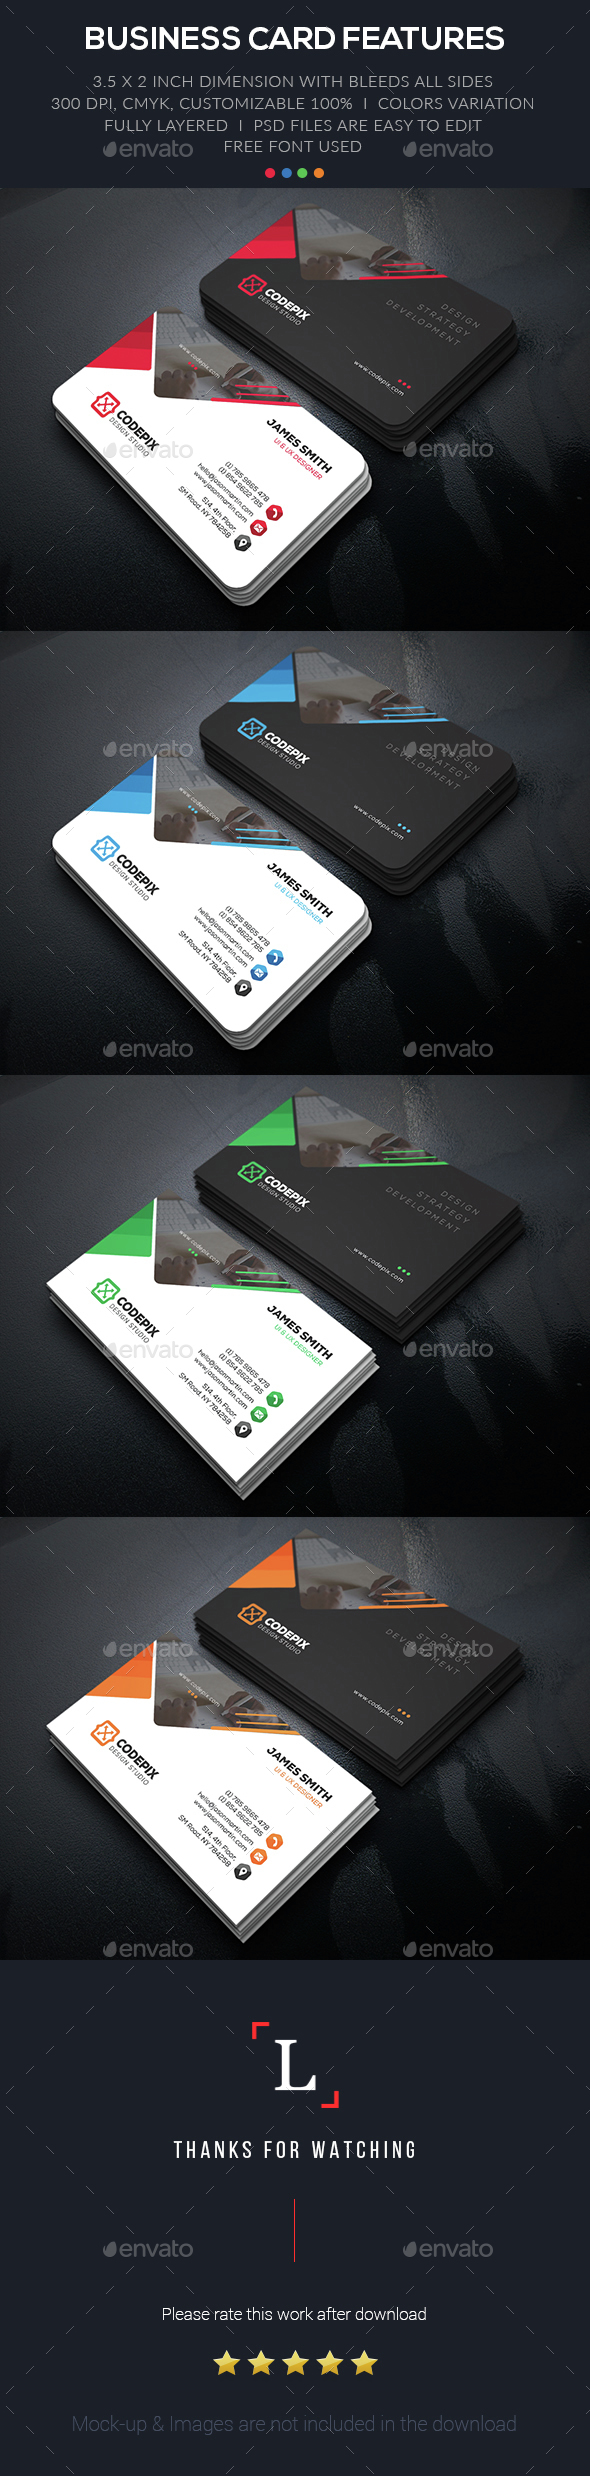 Strategy Business Card - Business Cards Print Templates